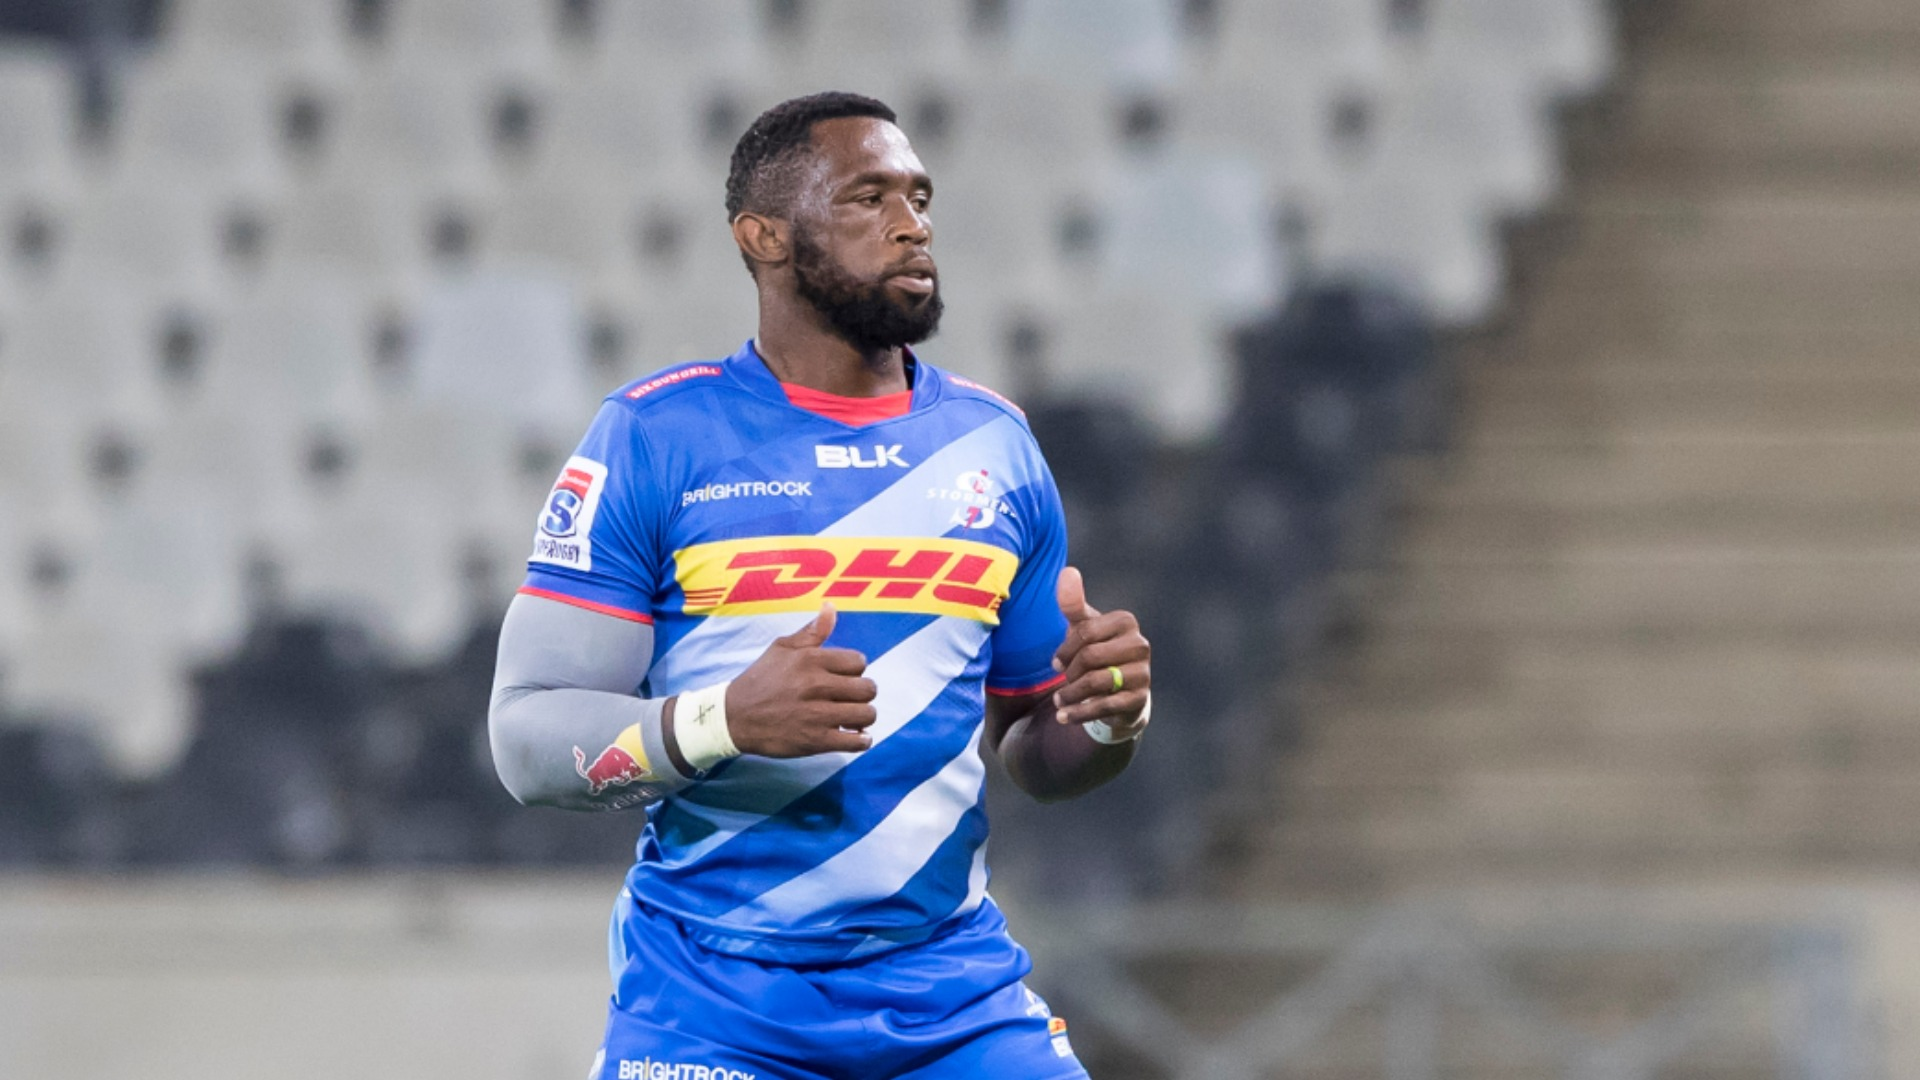 Rugby World Cup-winning captain Siya Kolisi signs with Sharks